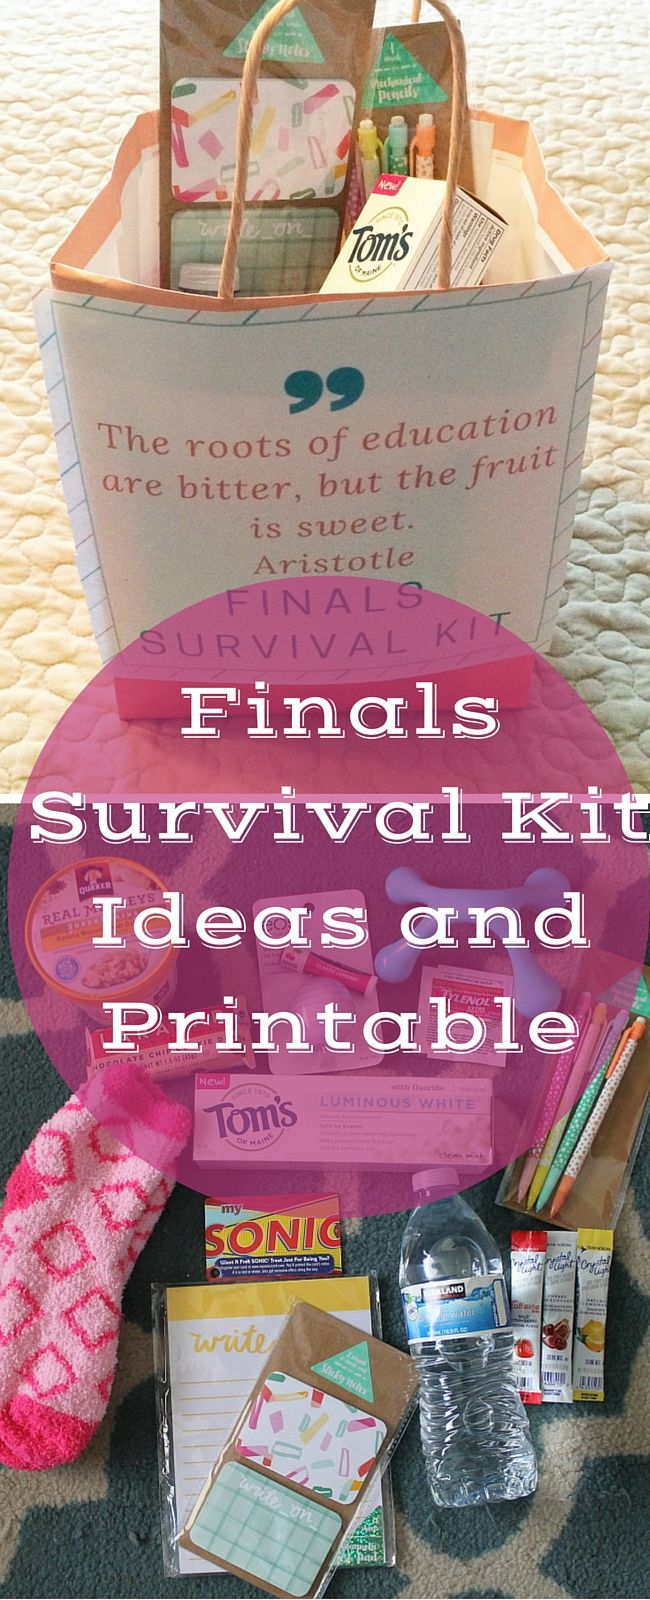 College Finals Survival Kit Blog Diy Survival Survival Kit